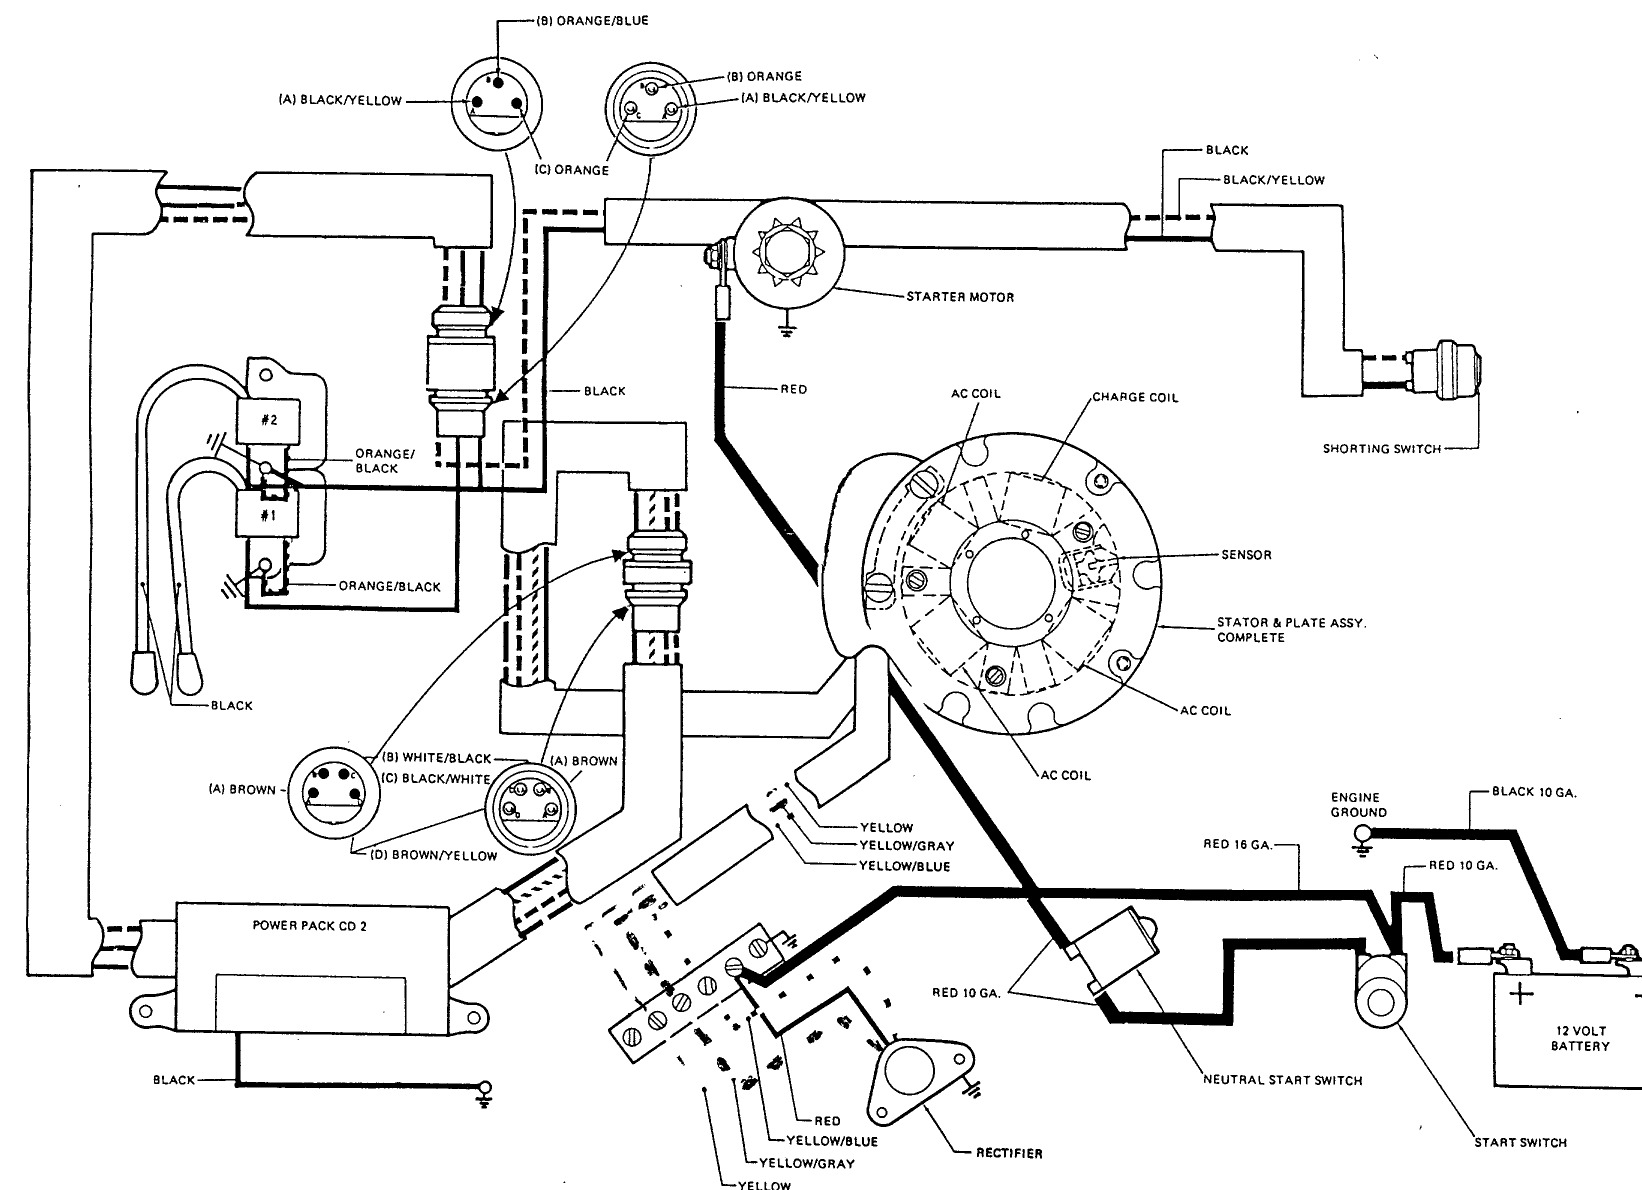 Honda 20 Hp Ignition Switch Wiring Diagram, Honda, Free